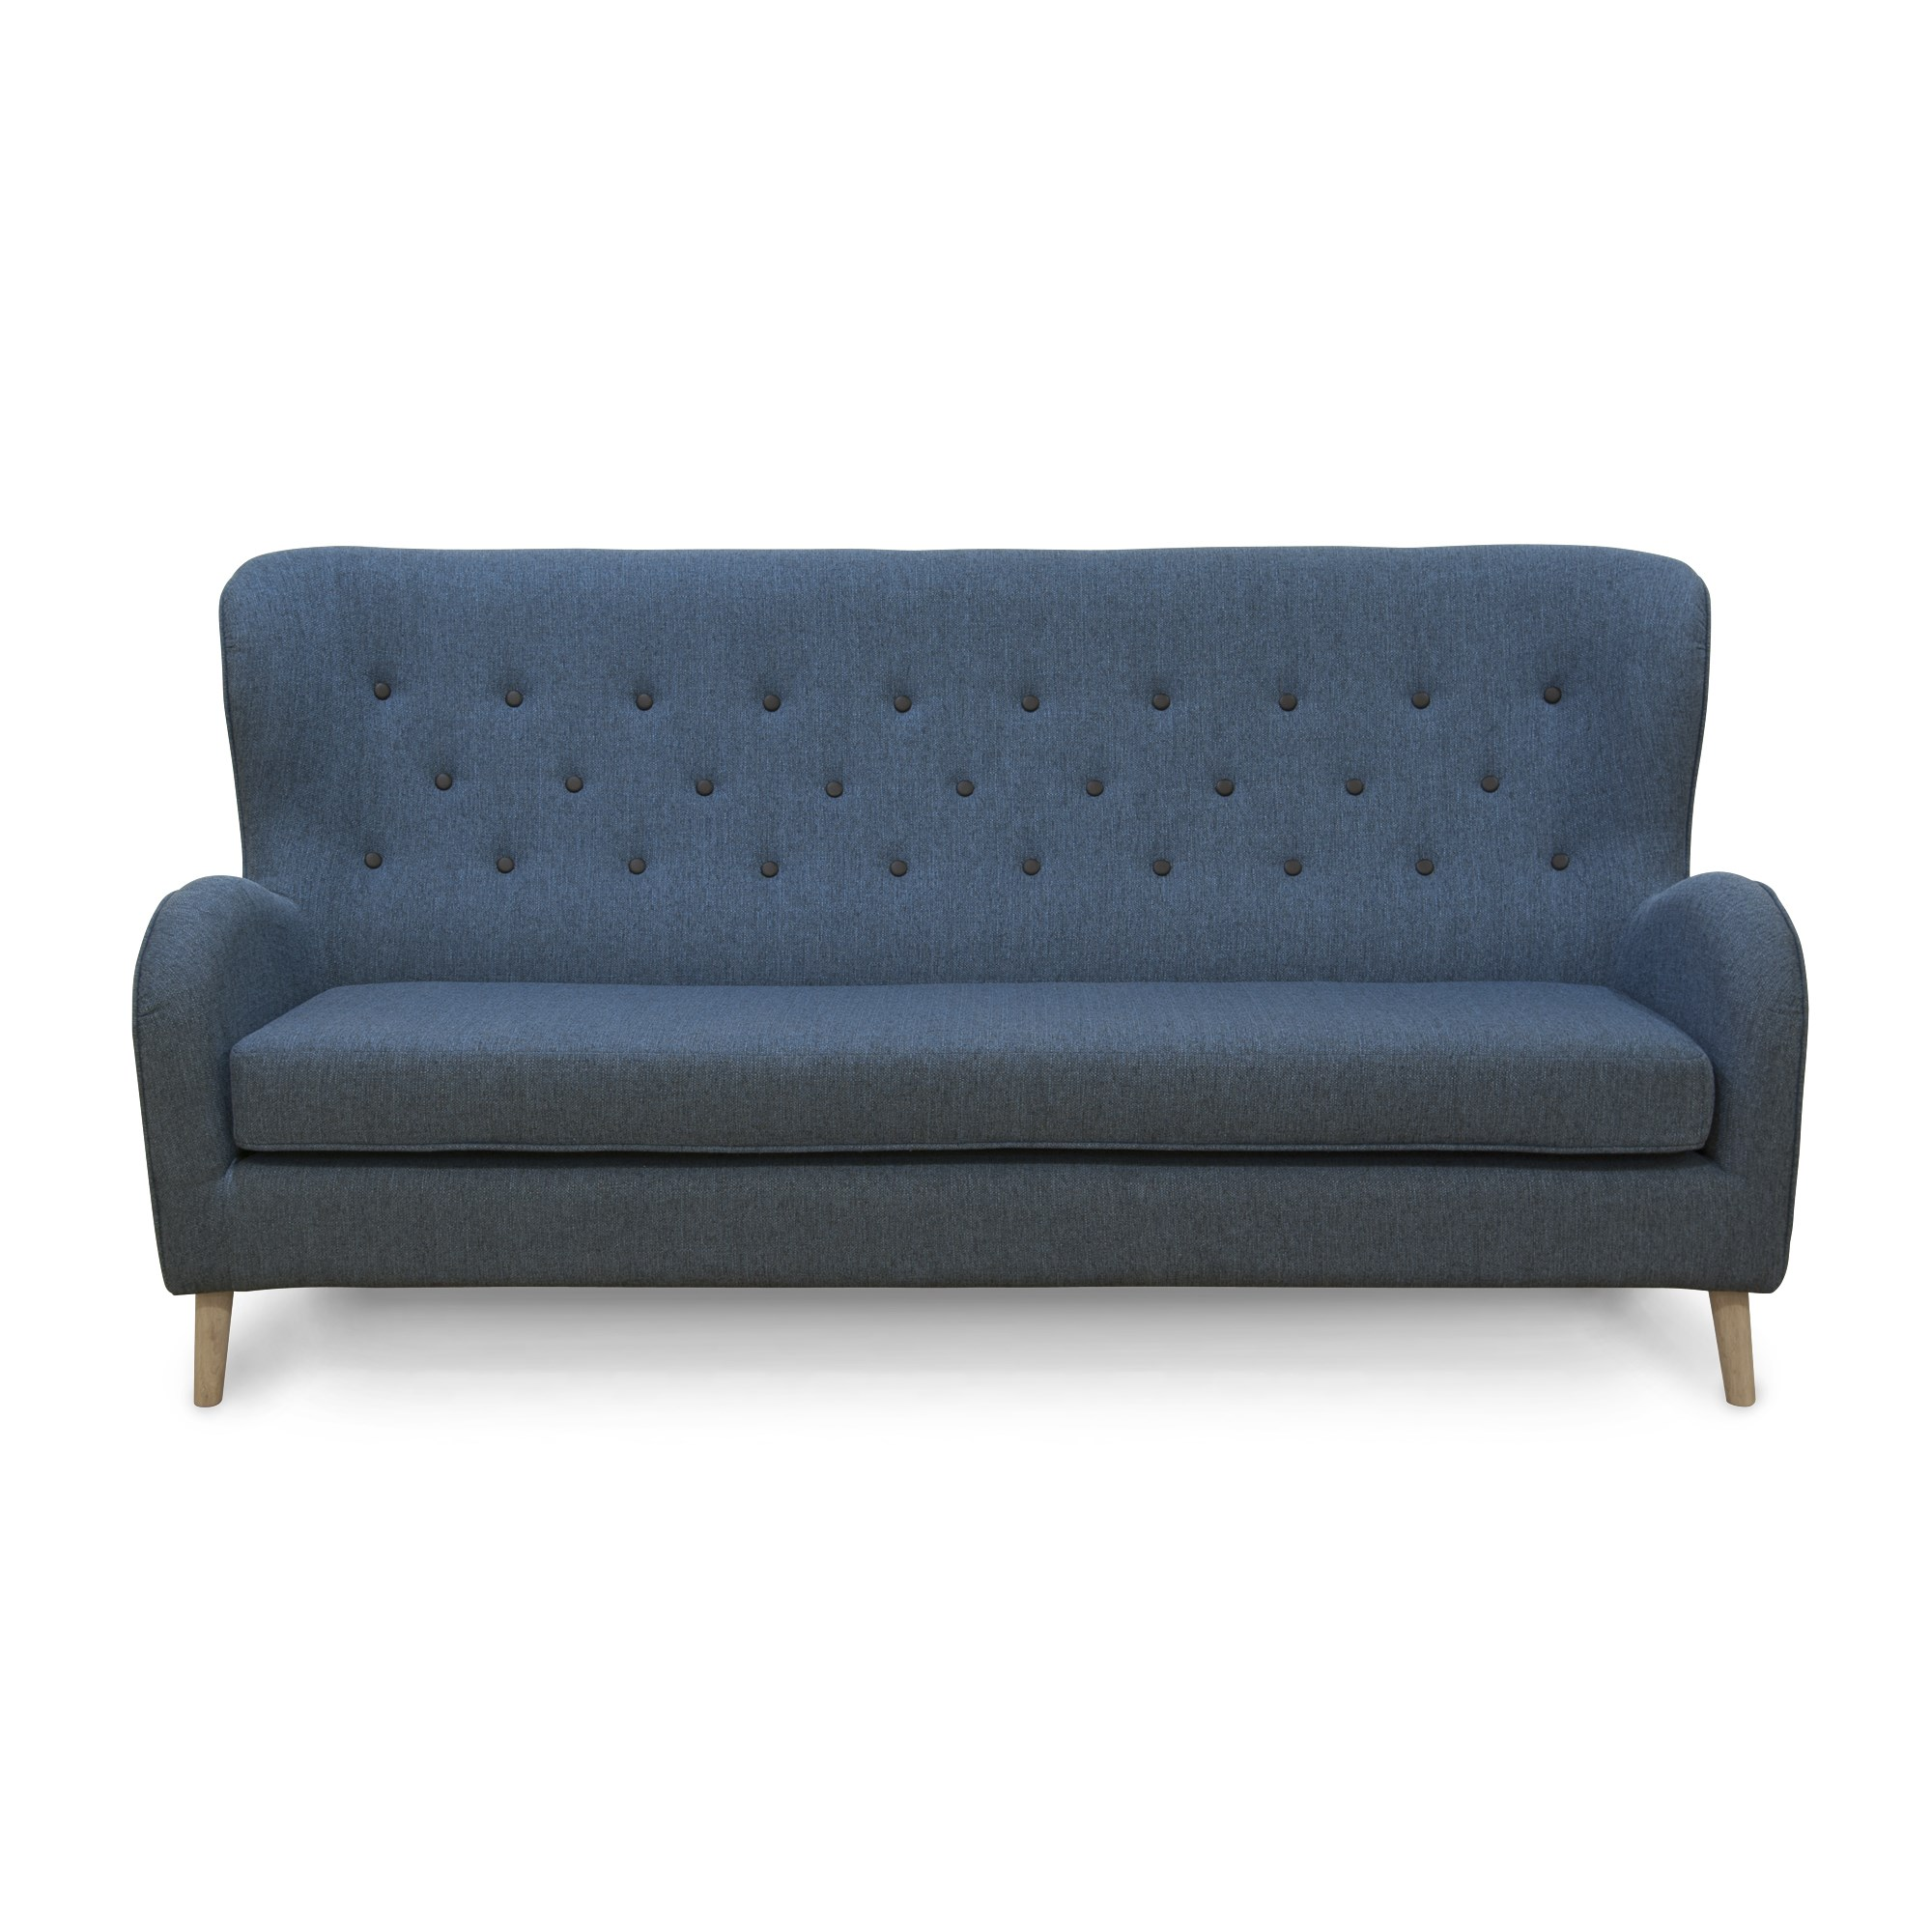 Topnotch KING 3 PERS SOFA - My Home Møbler SC81